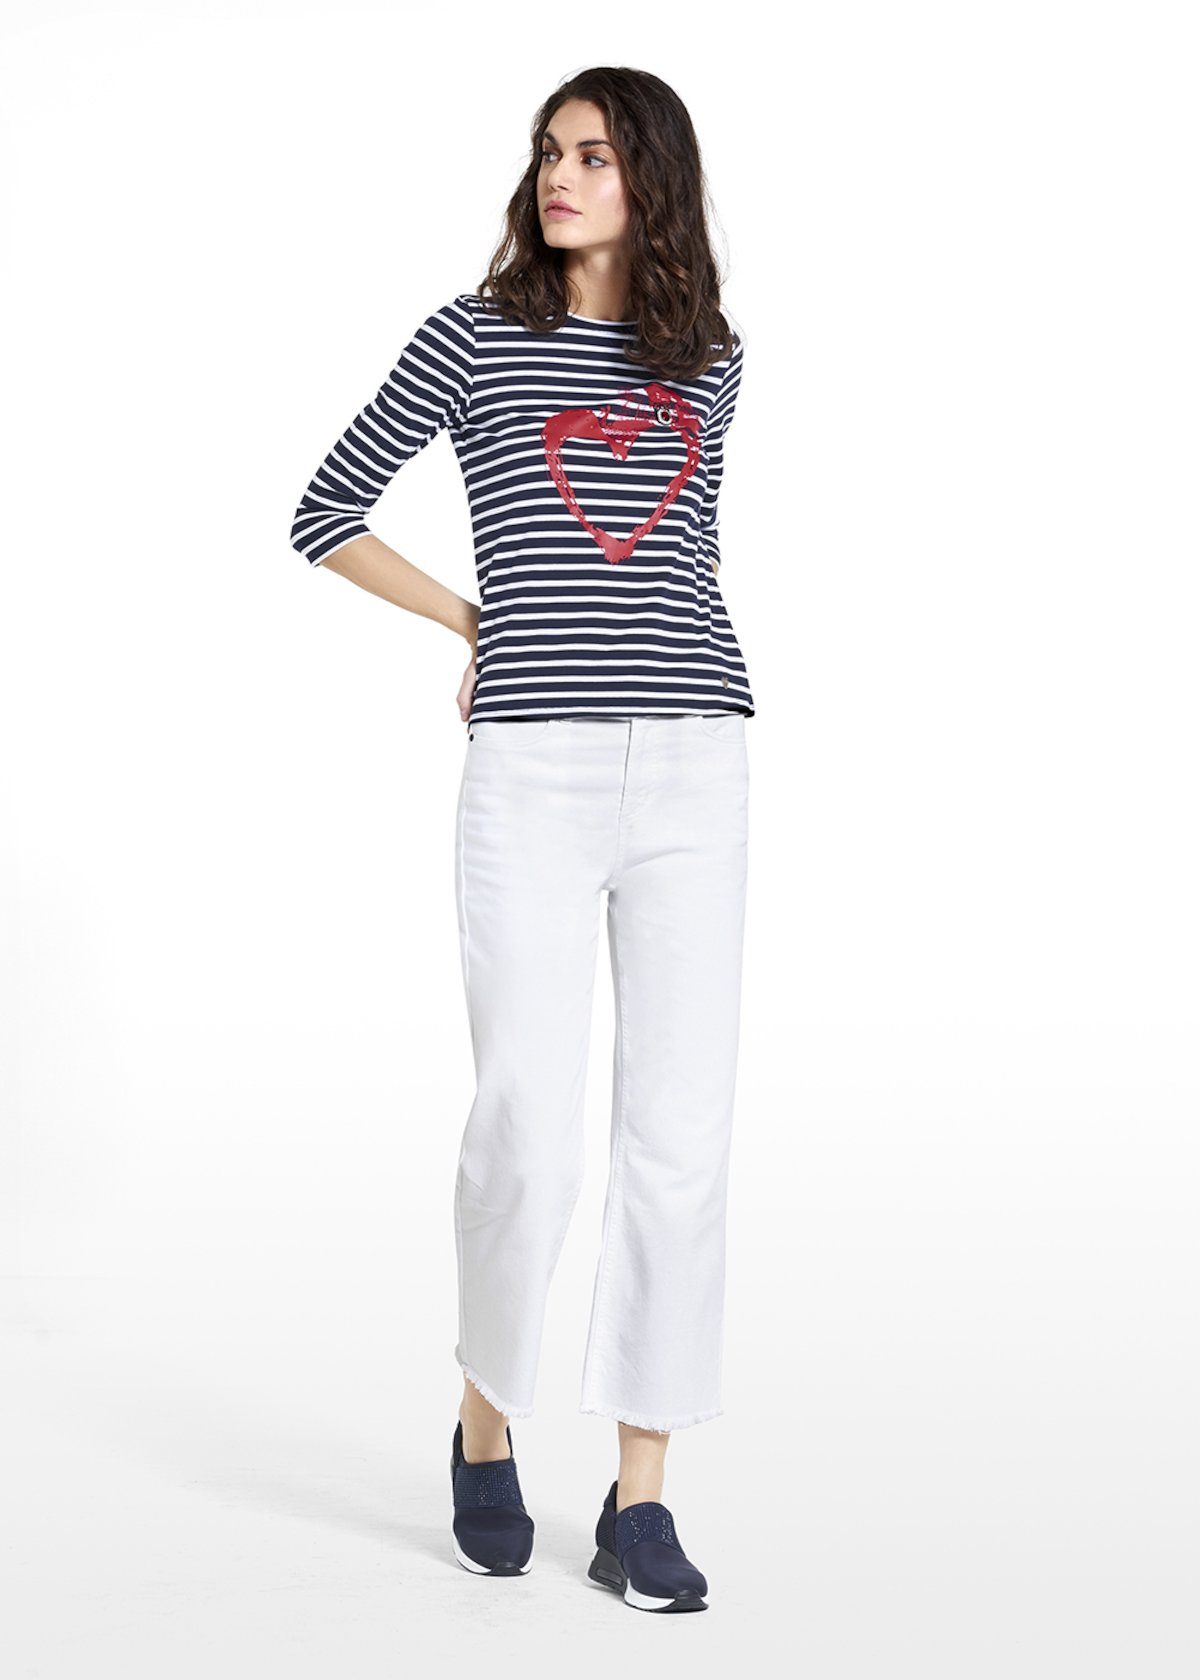 Sweater Sary in jersey stripes style with heart - Blue / White Stripes - Woman - Category image